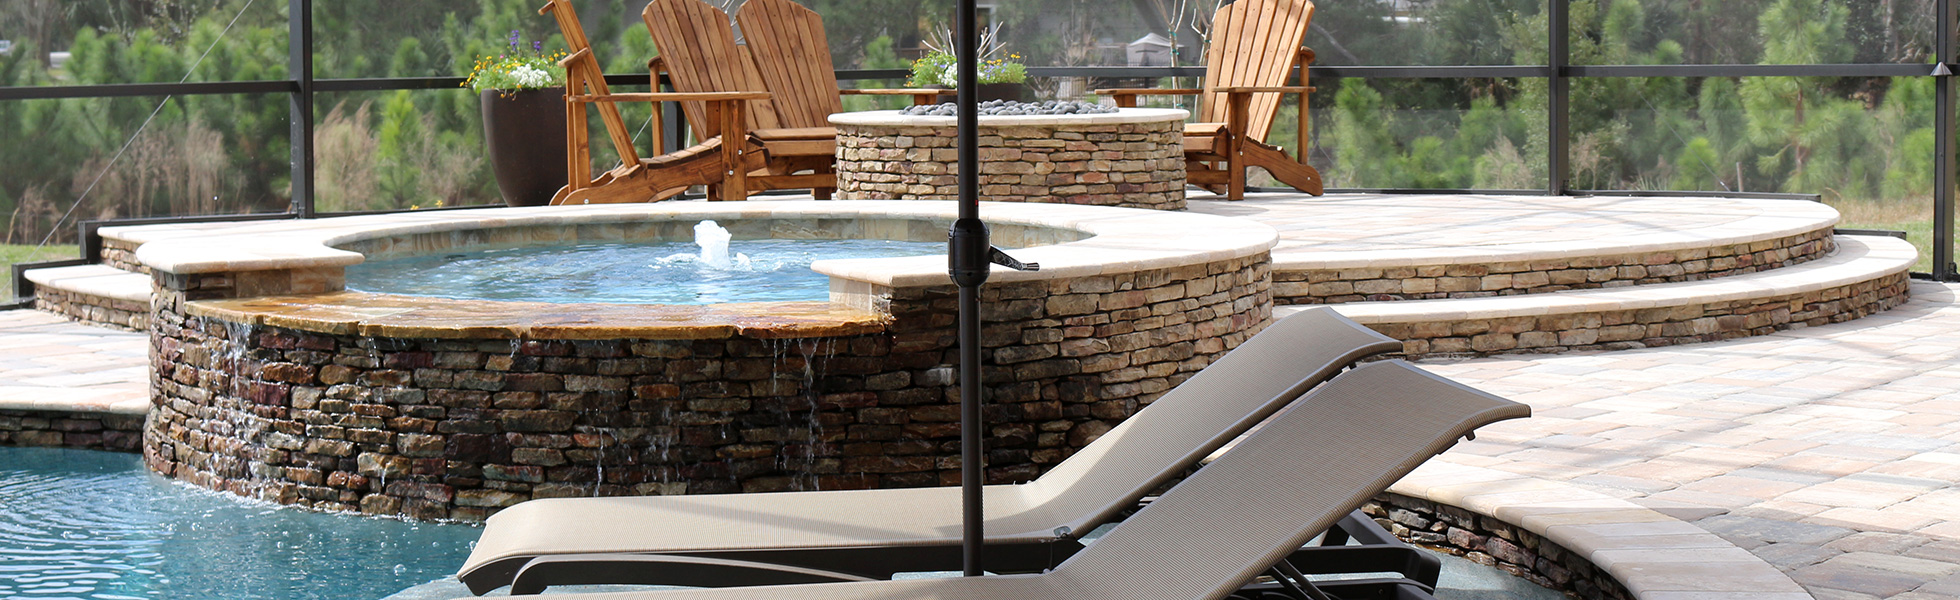 Custom Spa & Fire Pit by Paradise Pools by Design